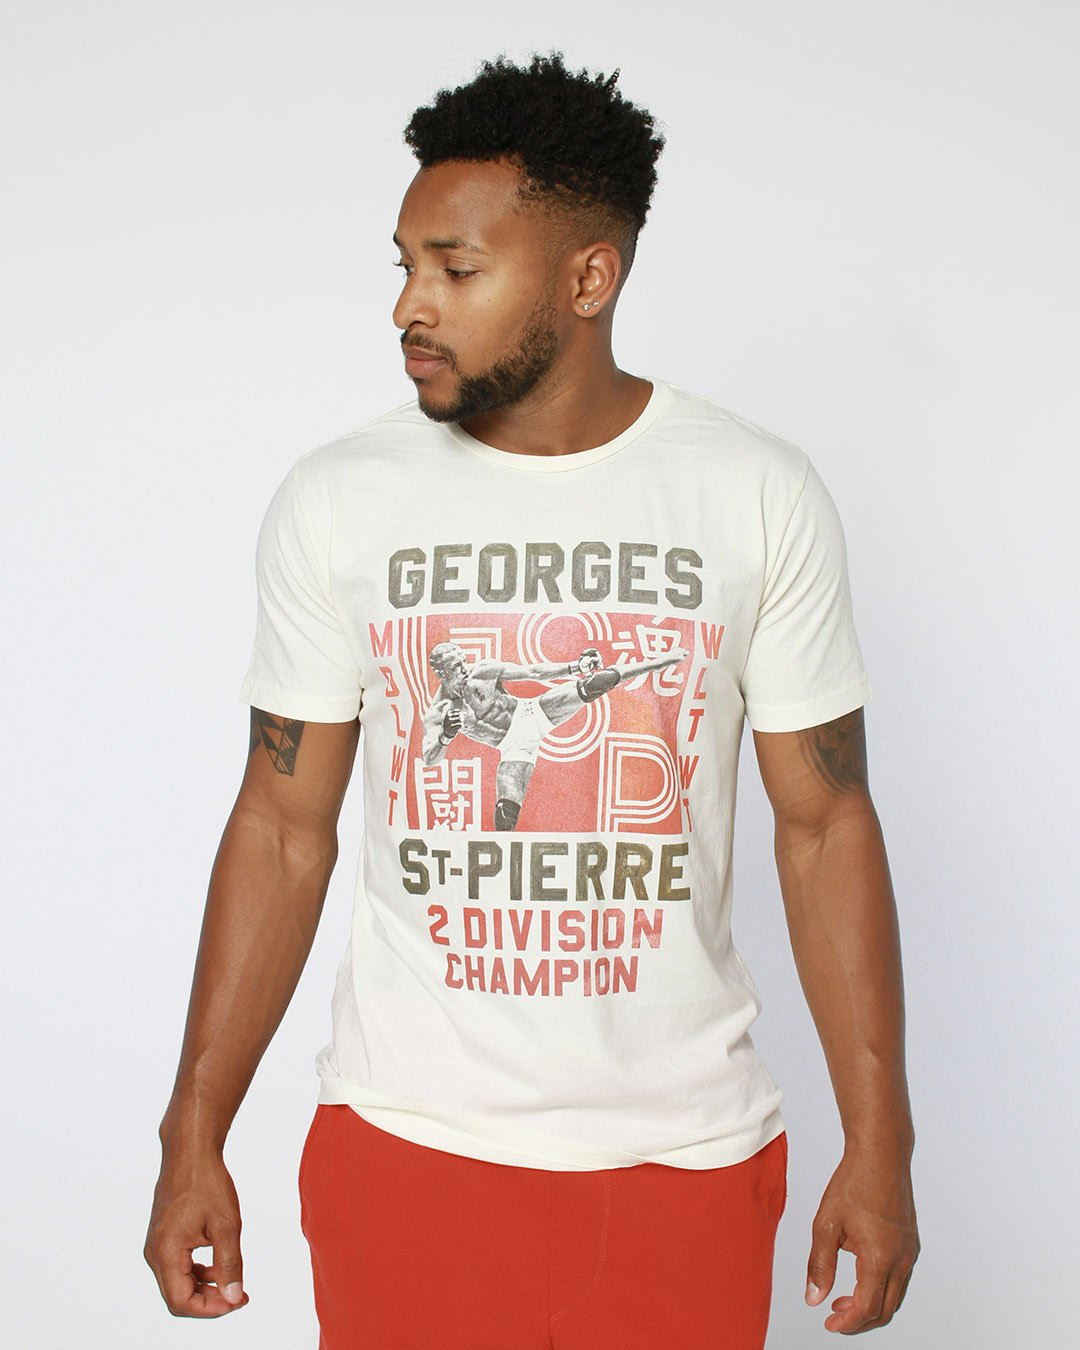 GSP 2 Division Champ Photo Tee